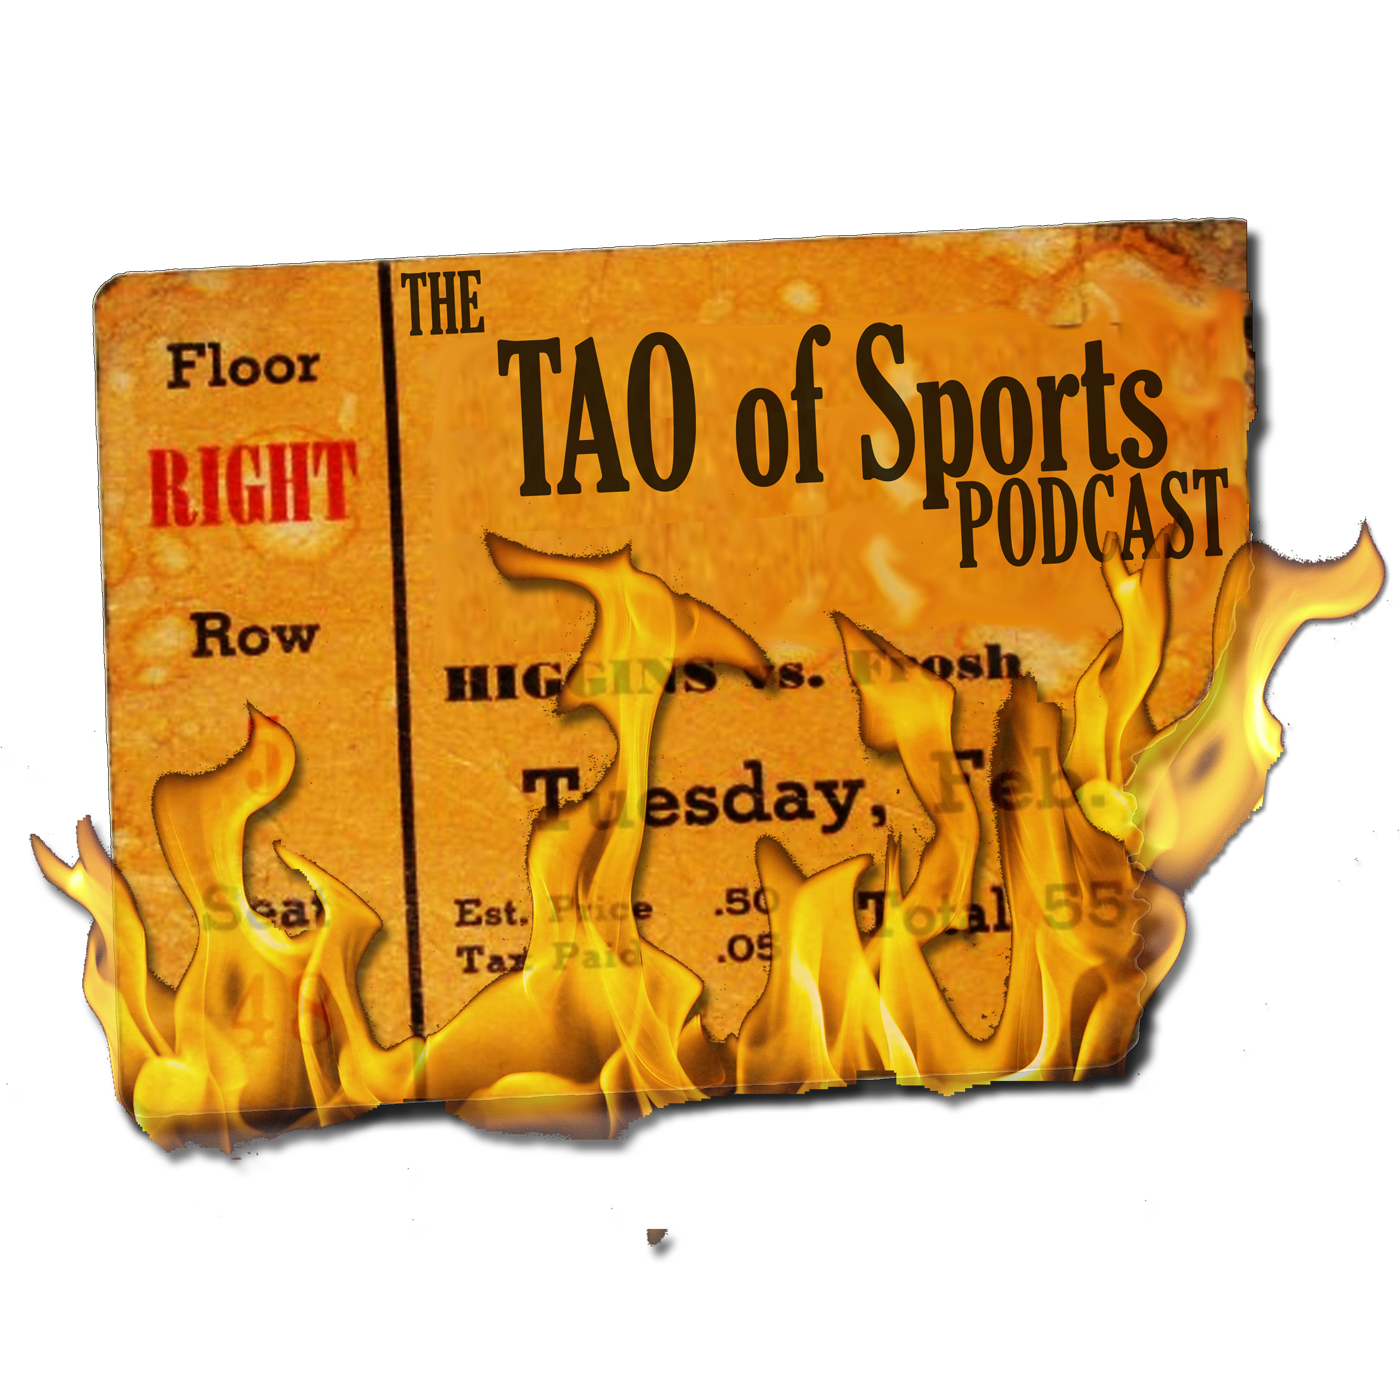 The Tao of Sports Podcast – The Definitive Sports, Marketing, Business Industry News Podcast